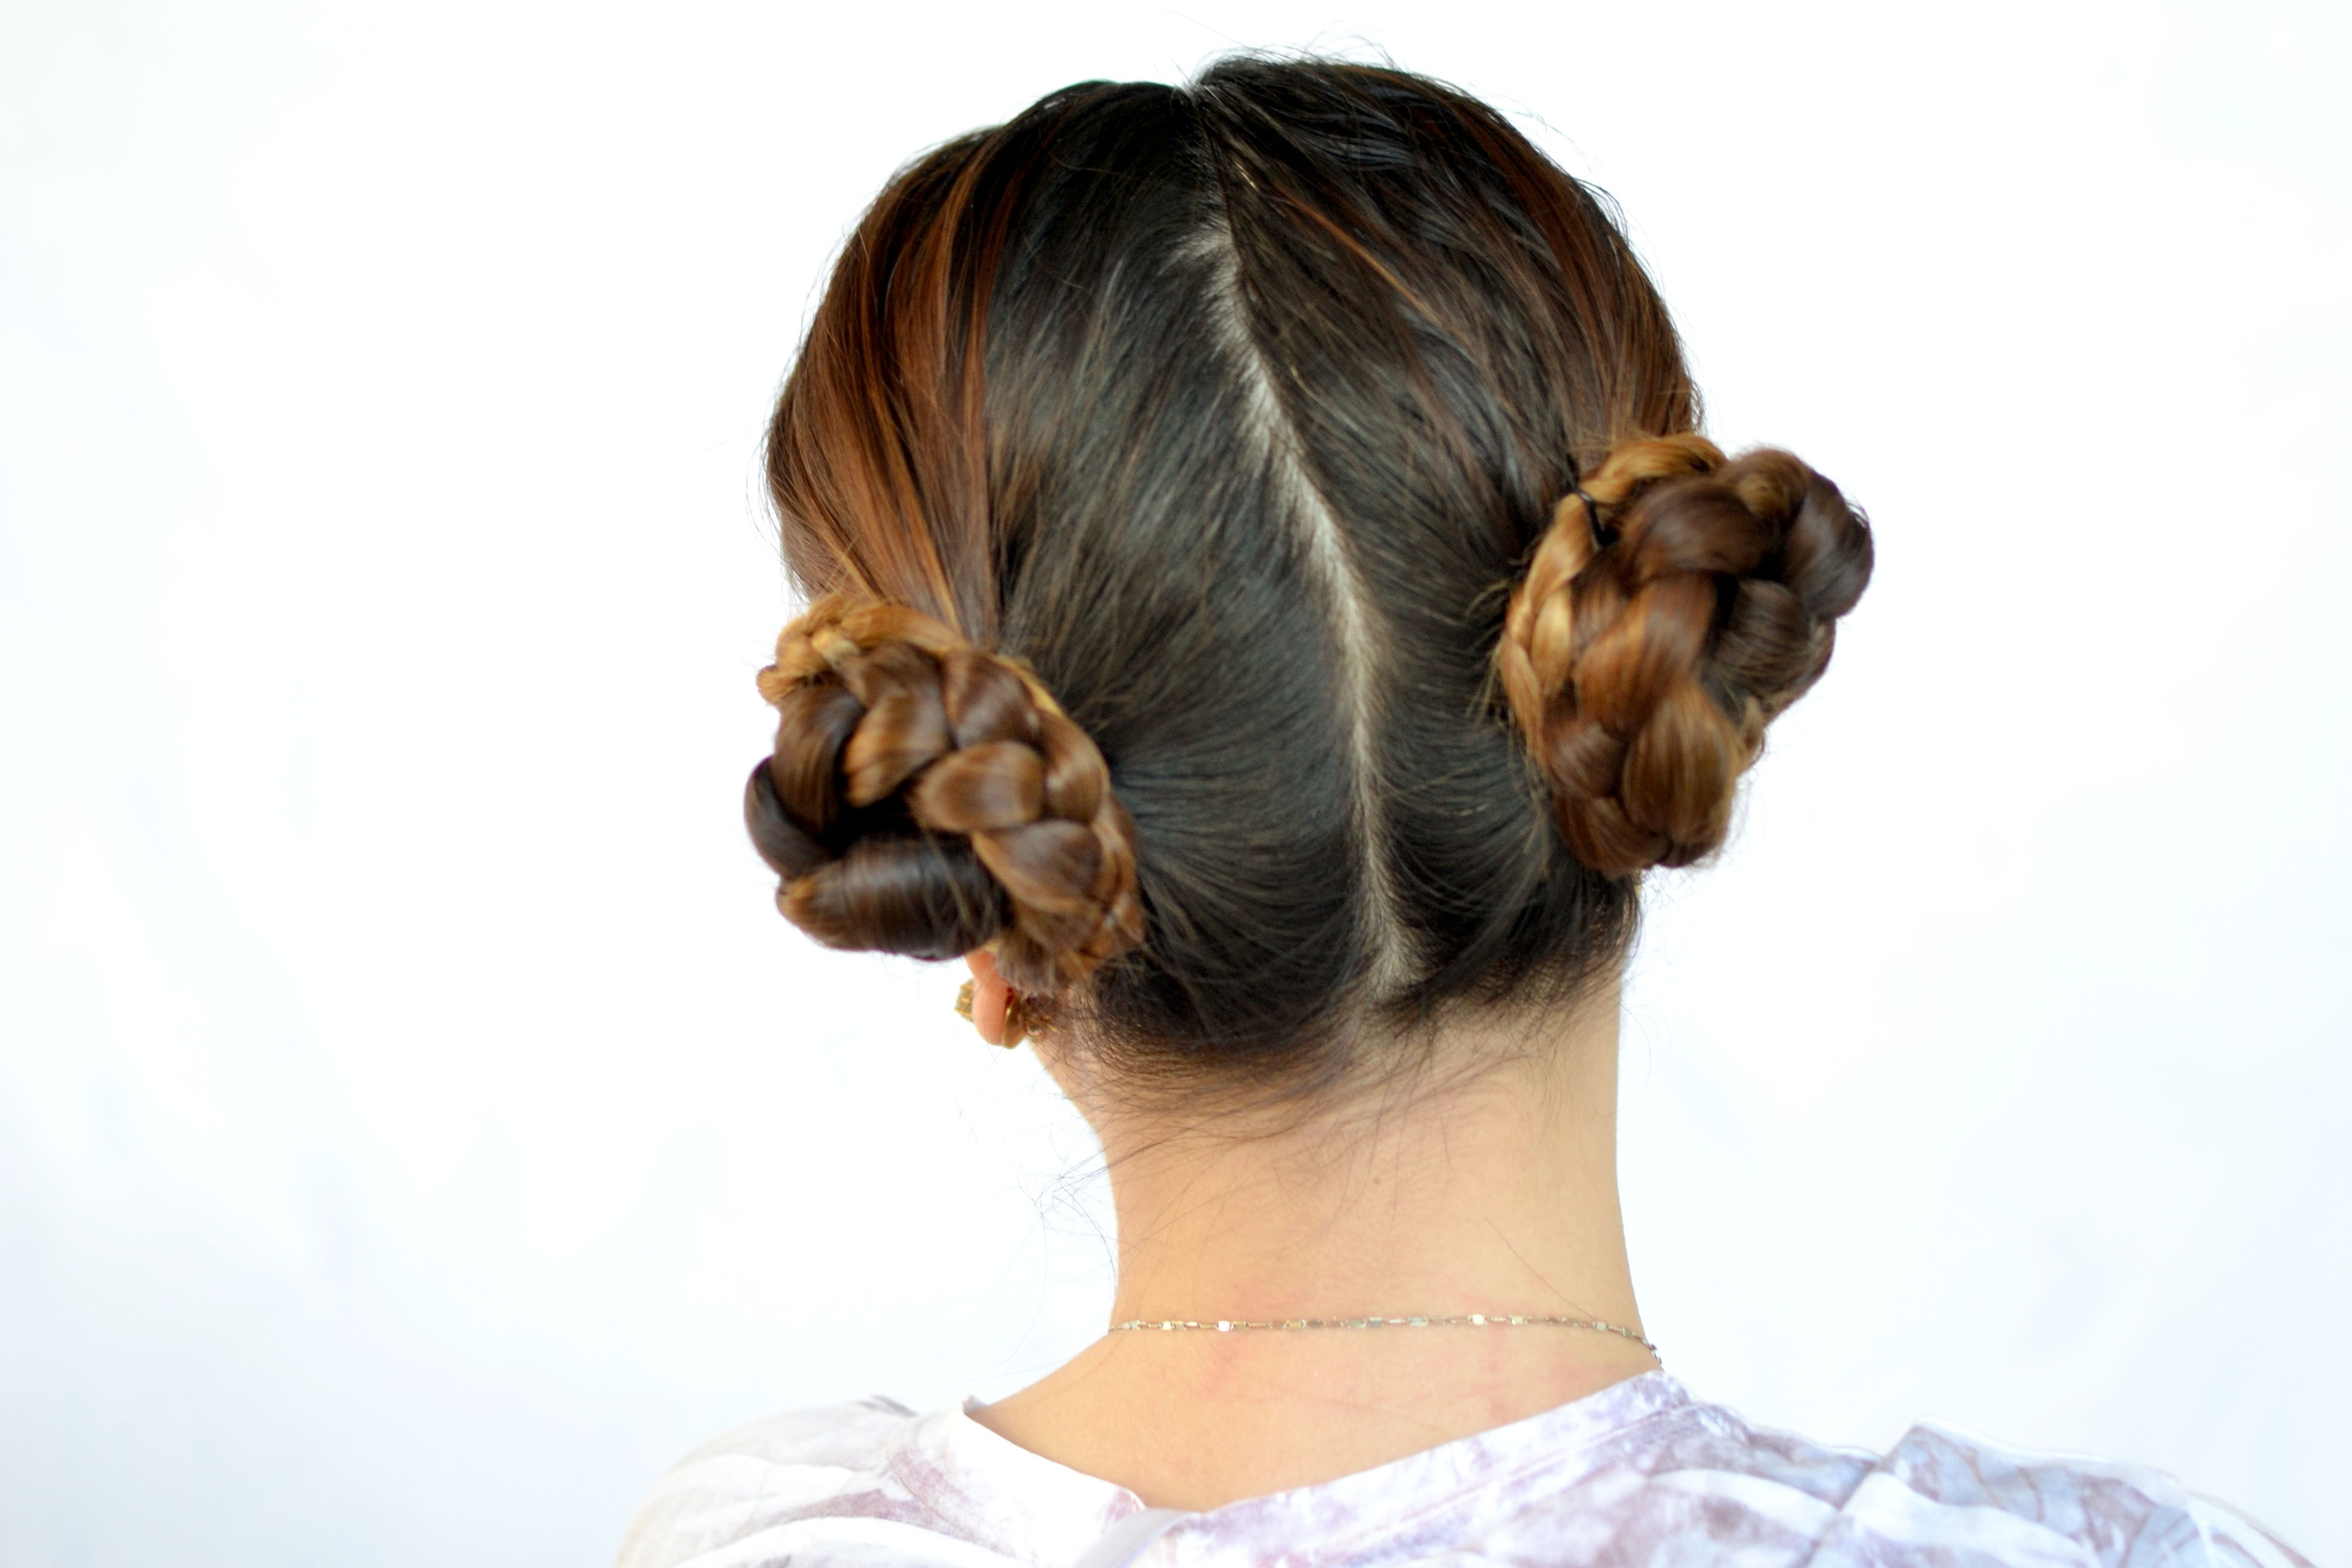 3 Ways To Create A Braided Cinnamon Bun Hairstyle – Wikihow For Widely Used Braided Bun Hairstyles (View 12 of 15)